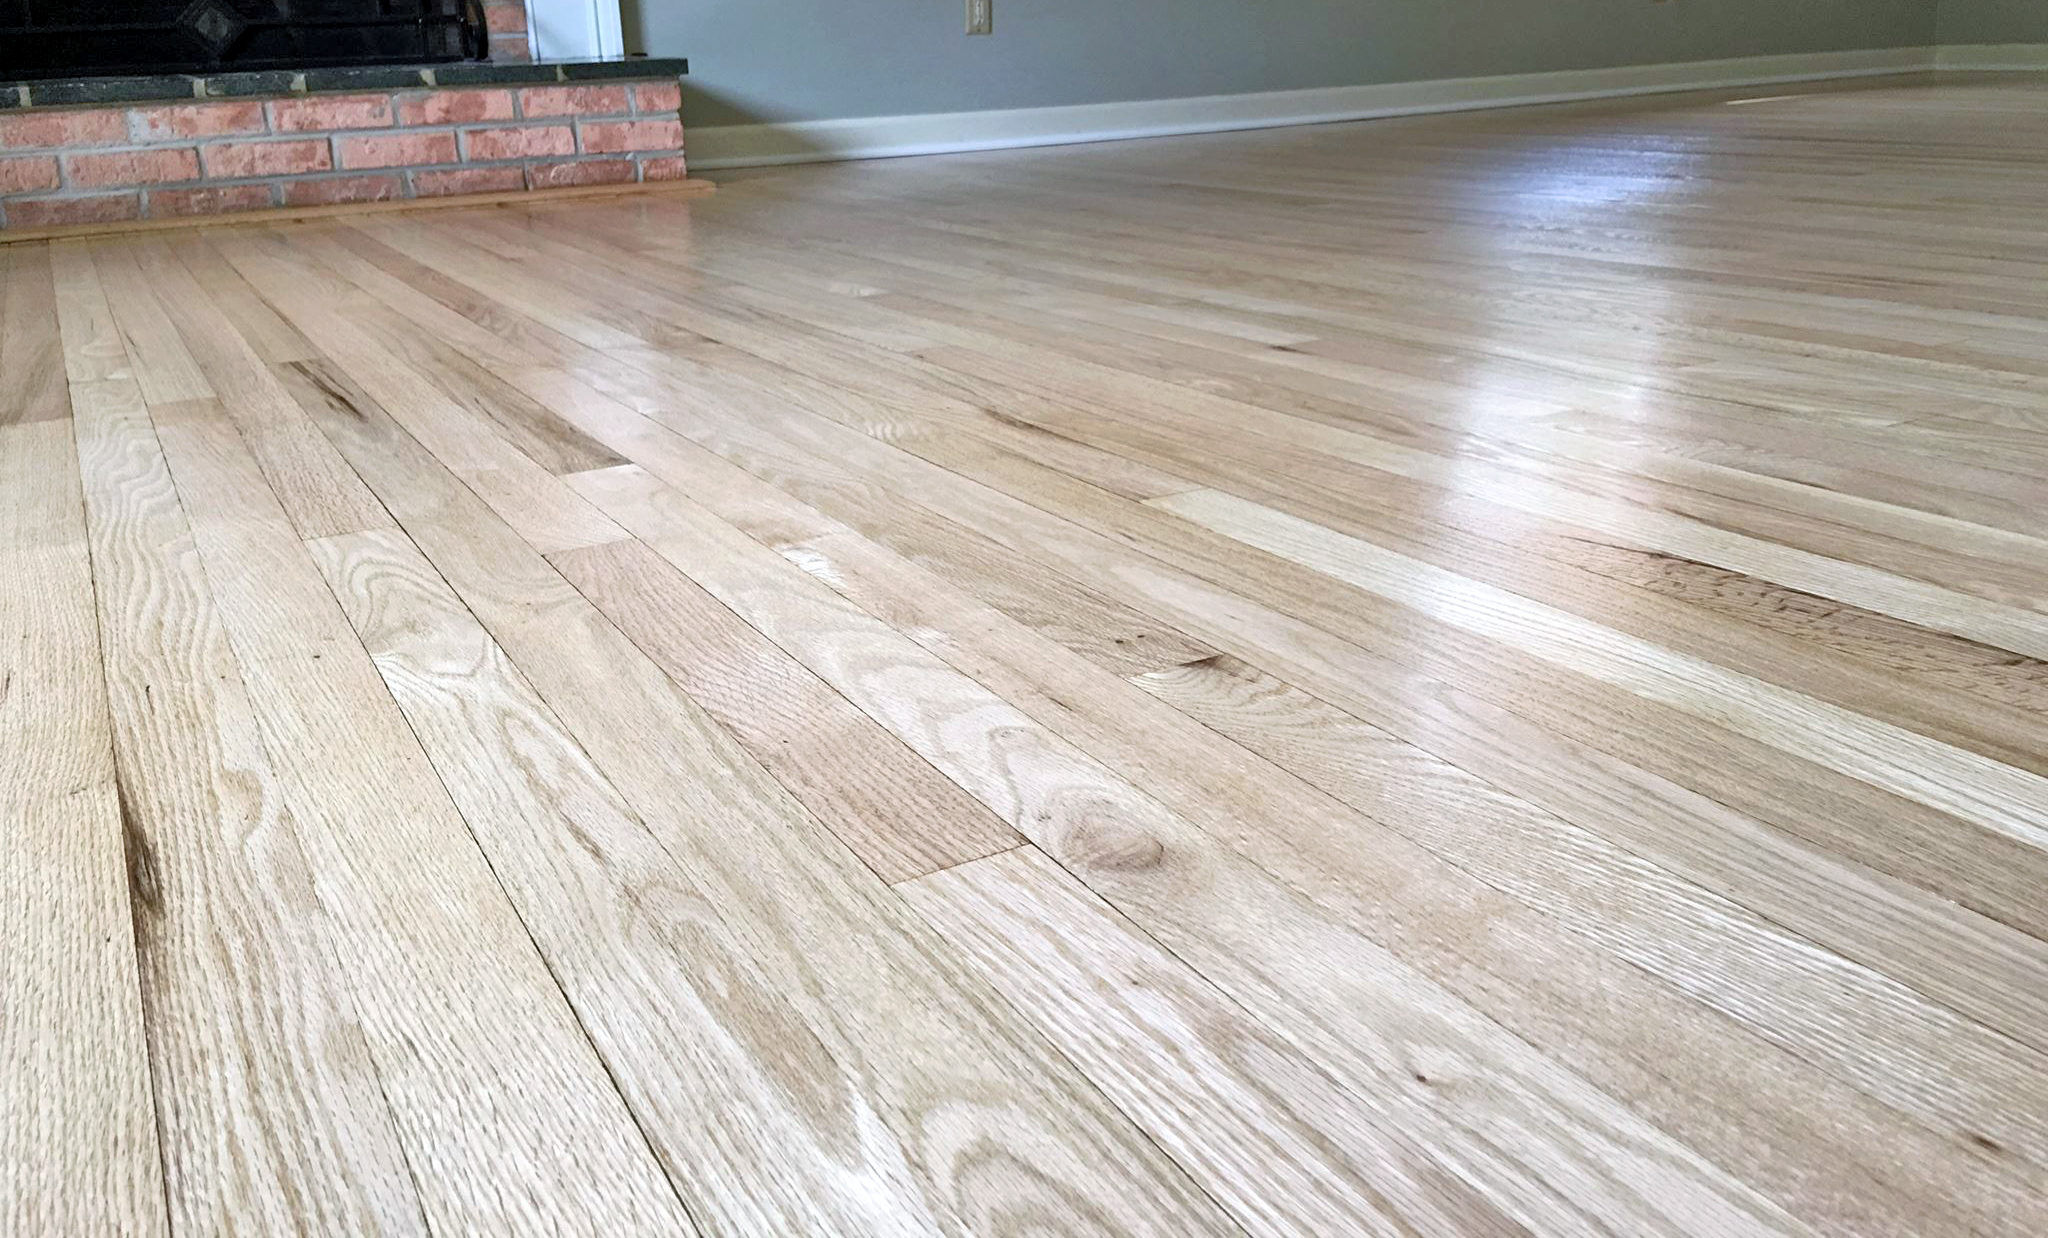 Red Oak Floors Refinished With Pro Image Satin General Finishes Design Center